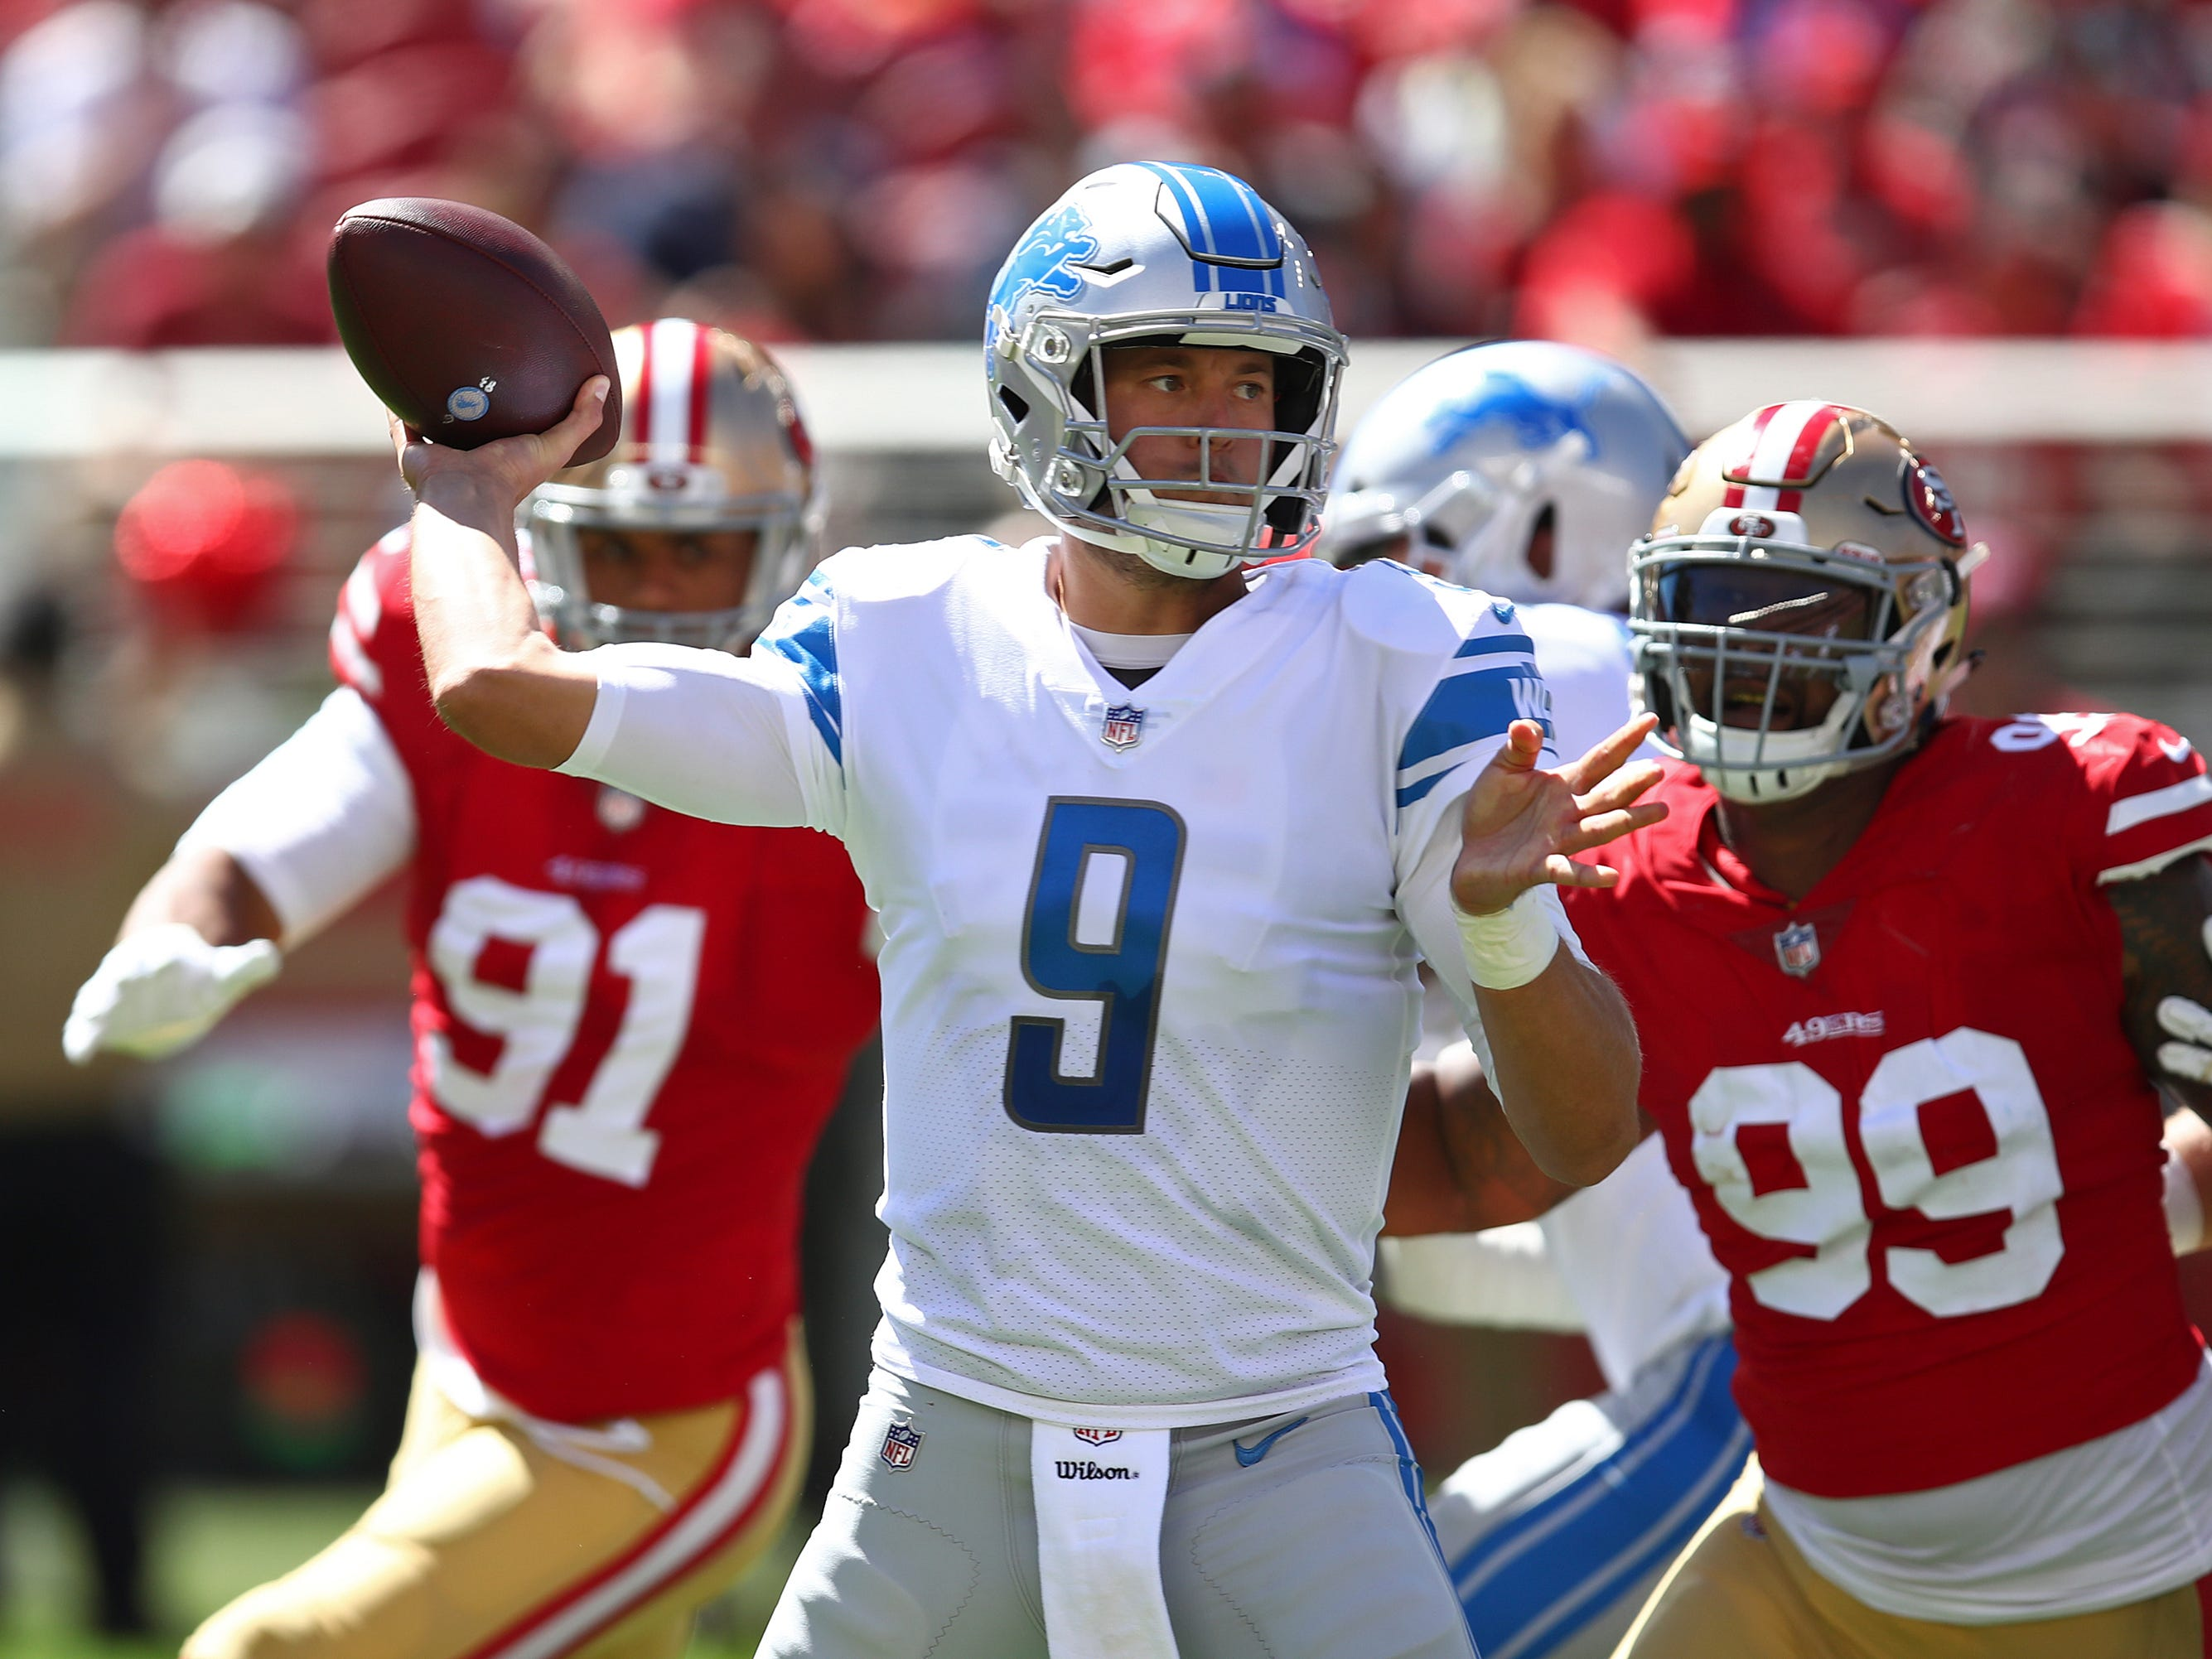 Detroit Lions quarterback Matthew Stafford (9) looks to throw as San Francisco 49ers defensive ends Arik Armstead (91) and DeForest Buckner (99) look on during the first half.